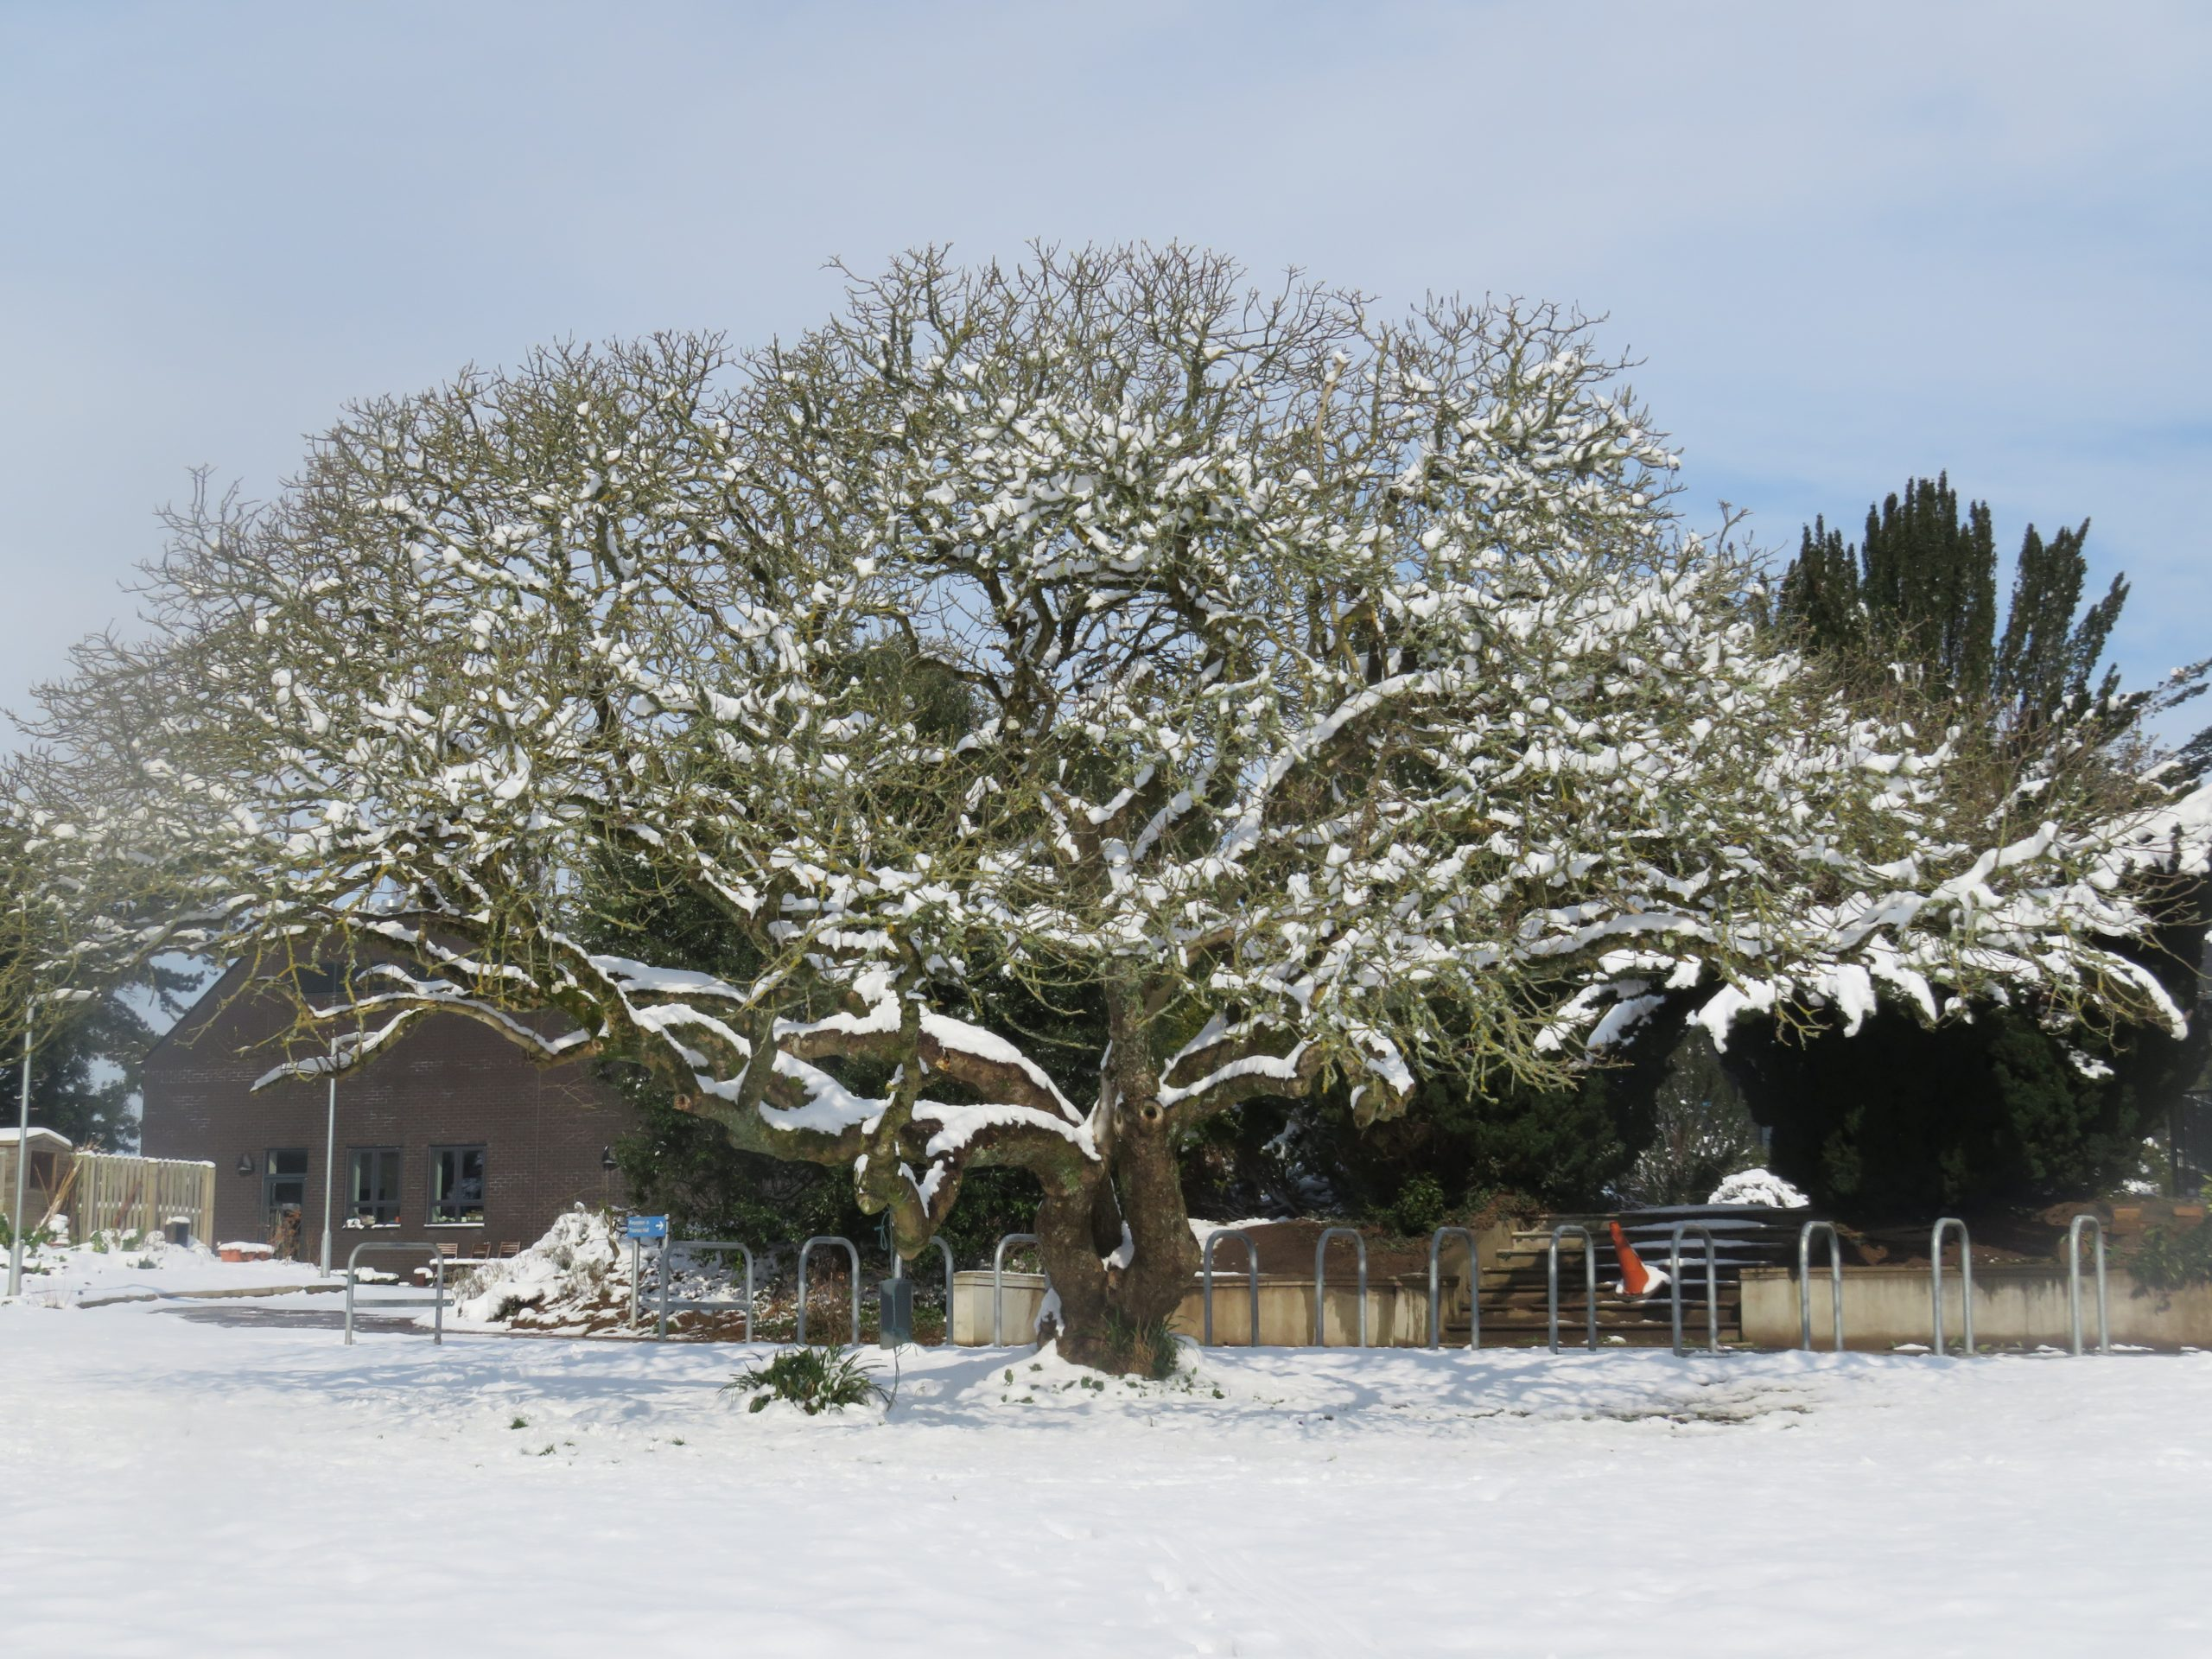 Aesculus californica (Californian bucked eyed chestnut) in the snow